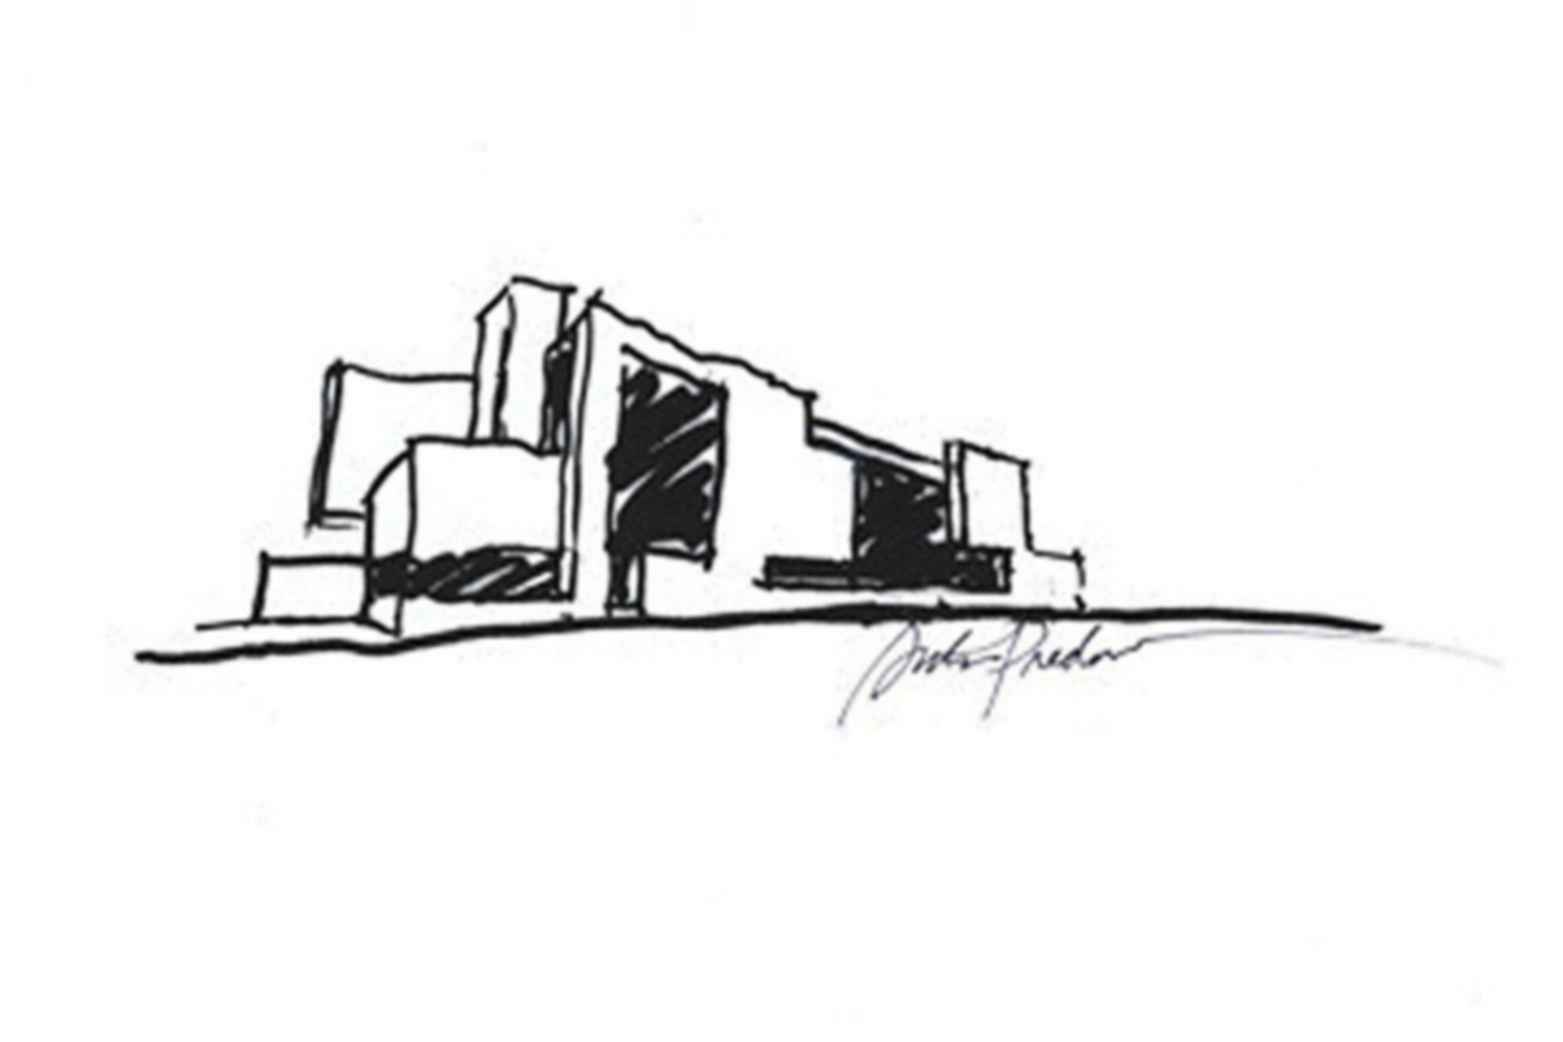 University of New Mexico School of Architecture and Planning - Drawing